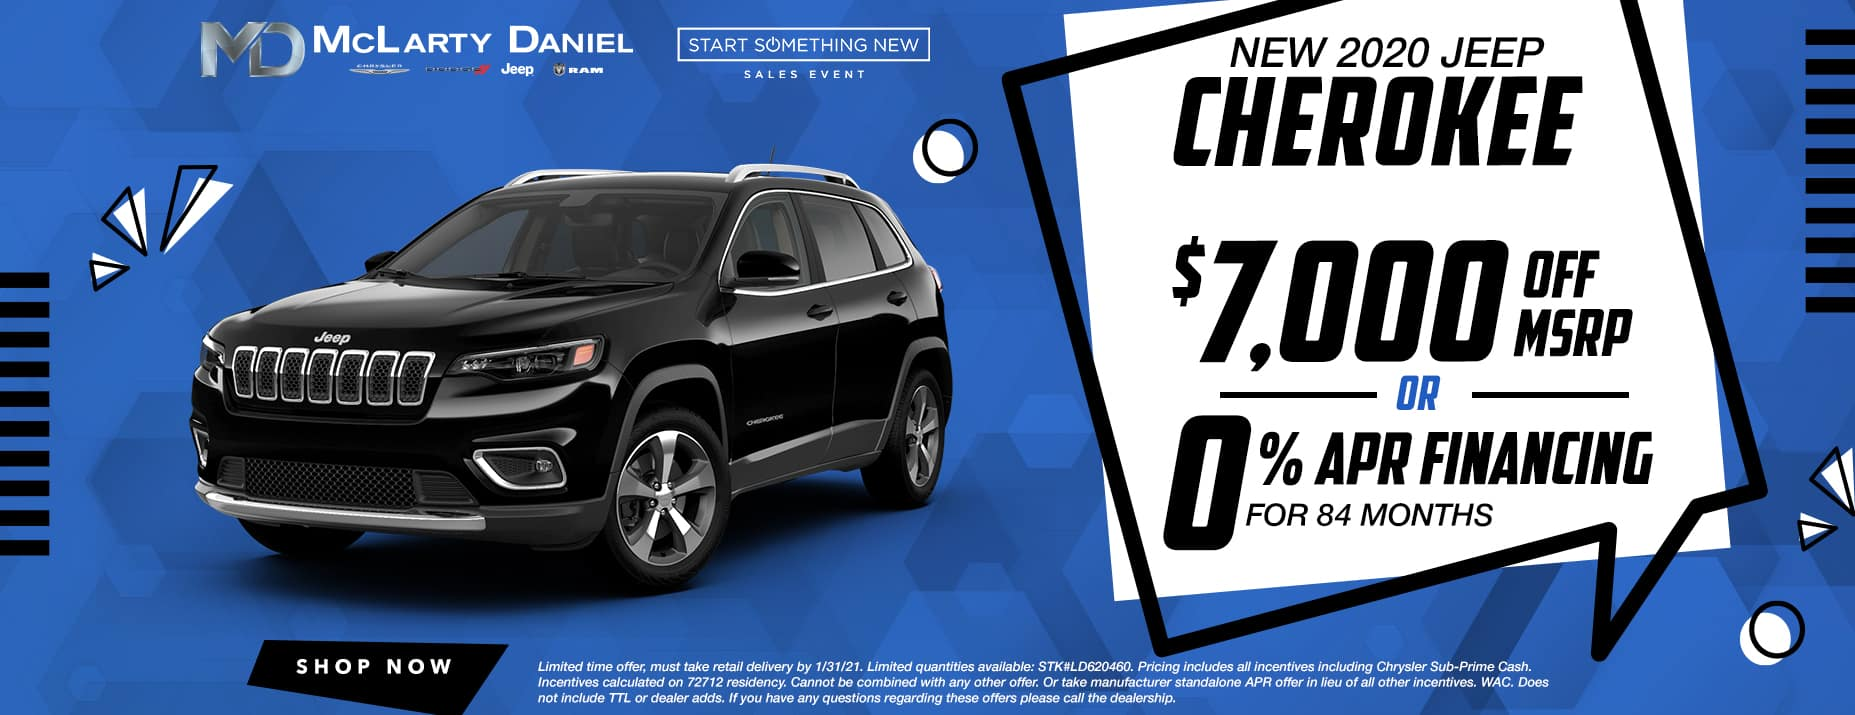 $7,000 OFF NEW '20 CHEROKEES -OR- GET 0% APR FOR 84 MONTHS!